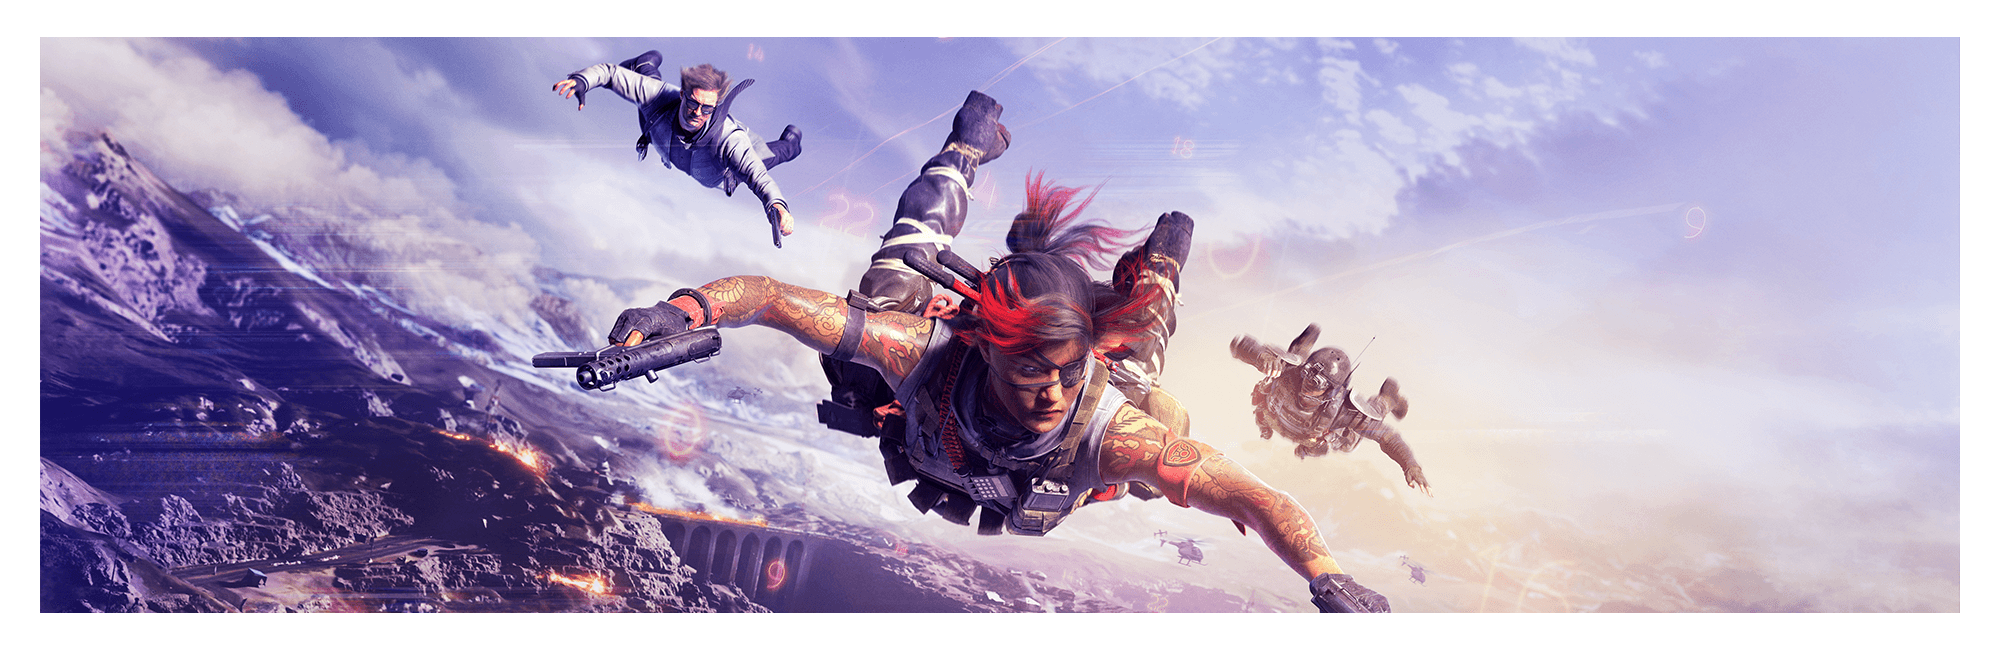 Banner image of operators dropping into Verdansk.